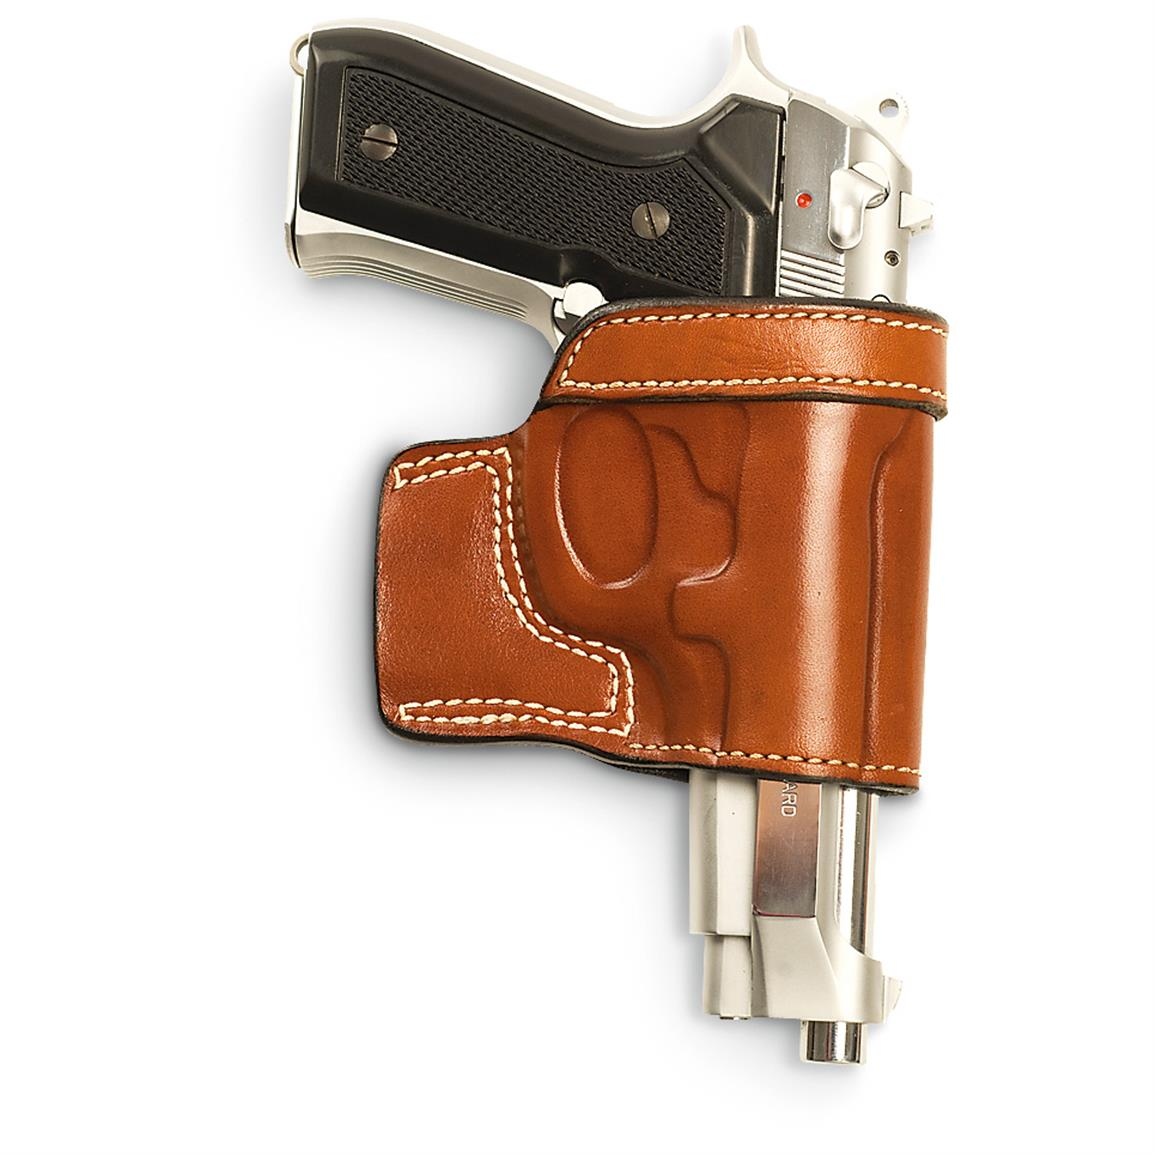 Cebeci Arms® Beretta® 92F, Taurus PT92 / PT99 Leather Speed Holster, Tan